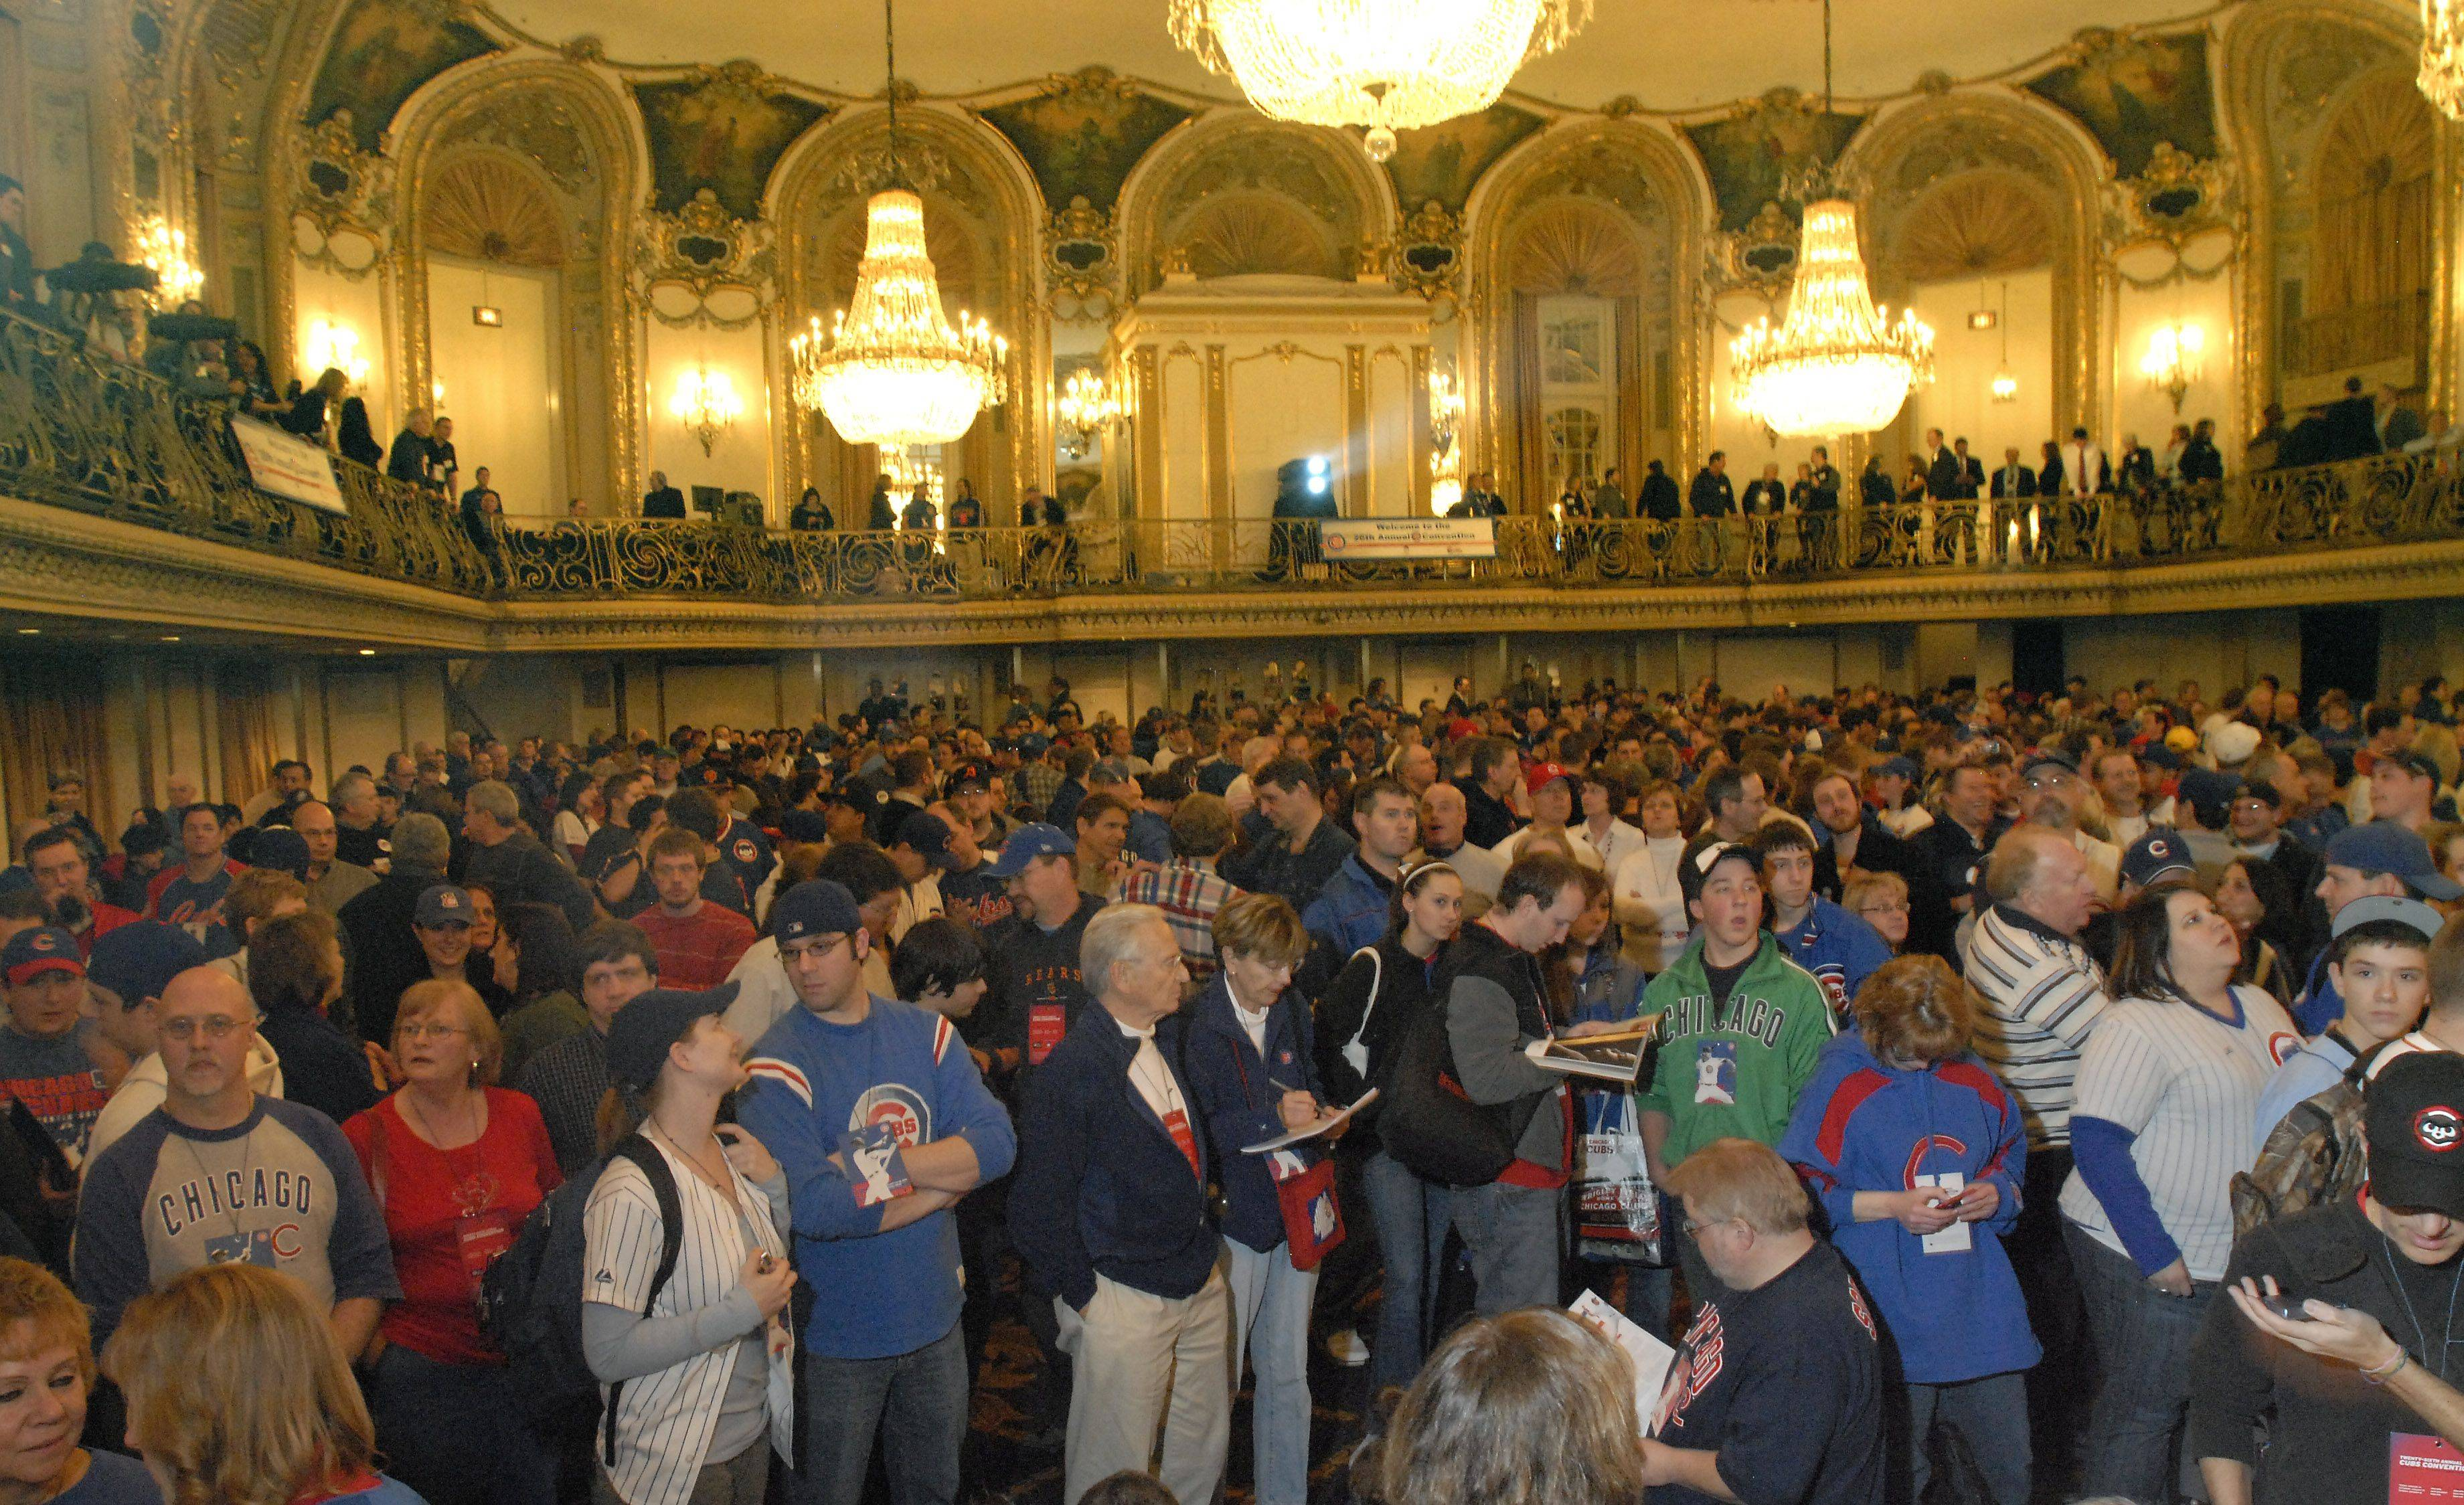 Fans fill the grand ballroom Friday at the Hilton during the first day of the Cubs convention in Chicago.